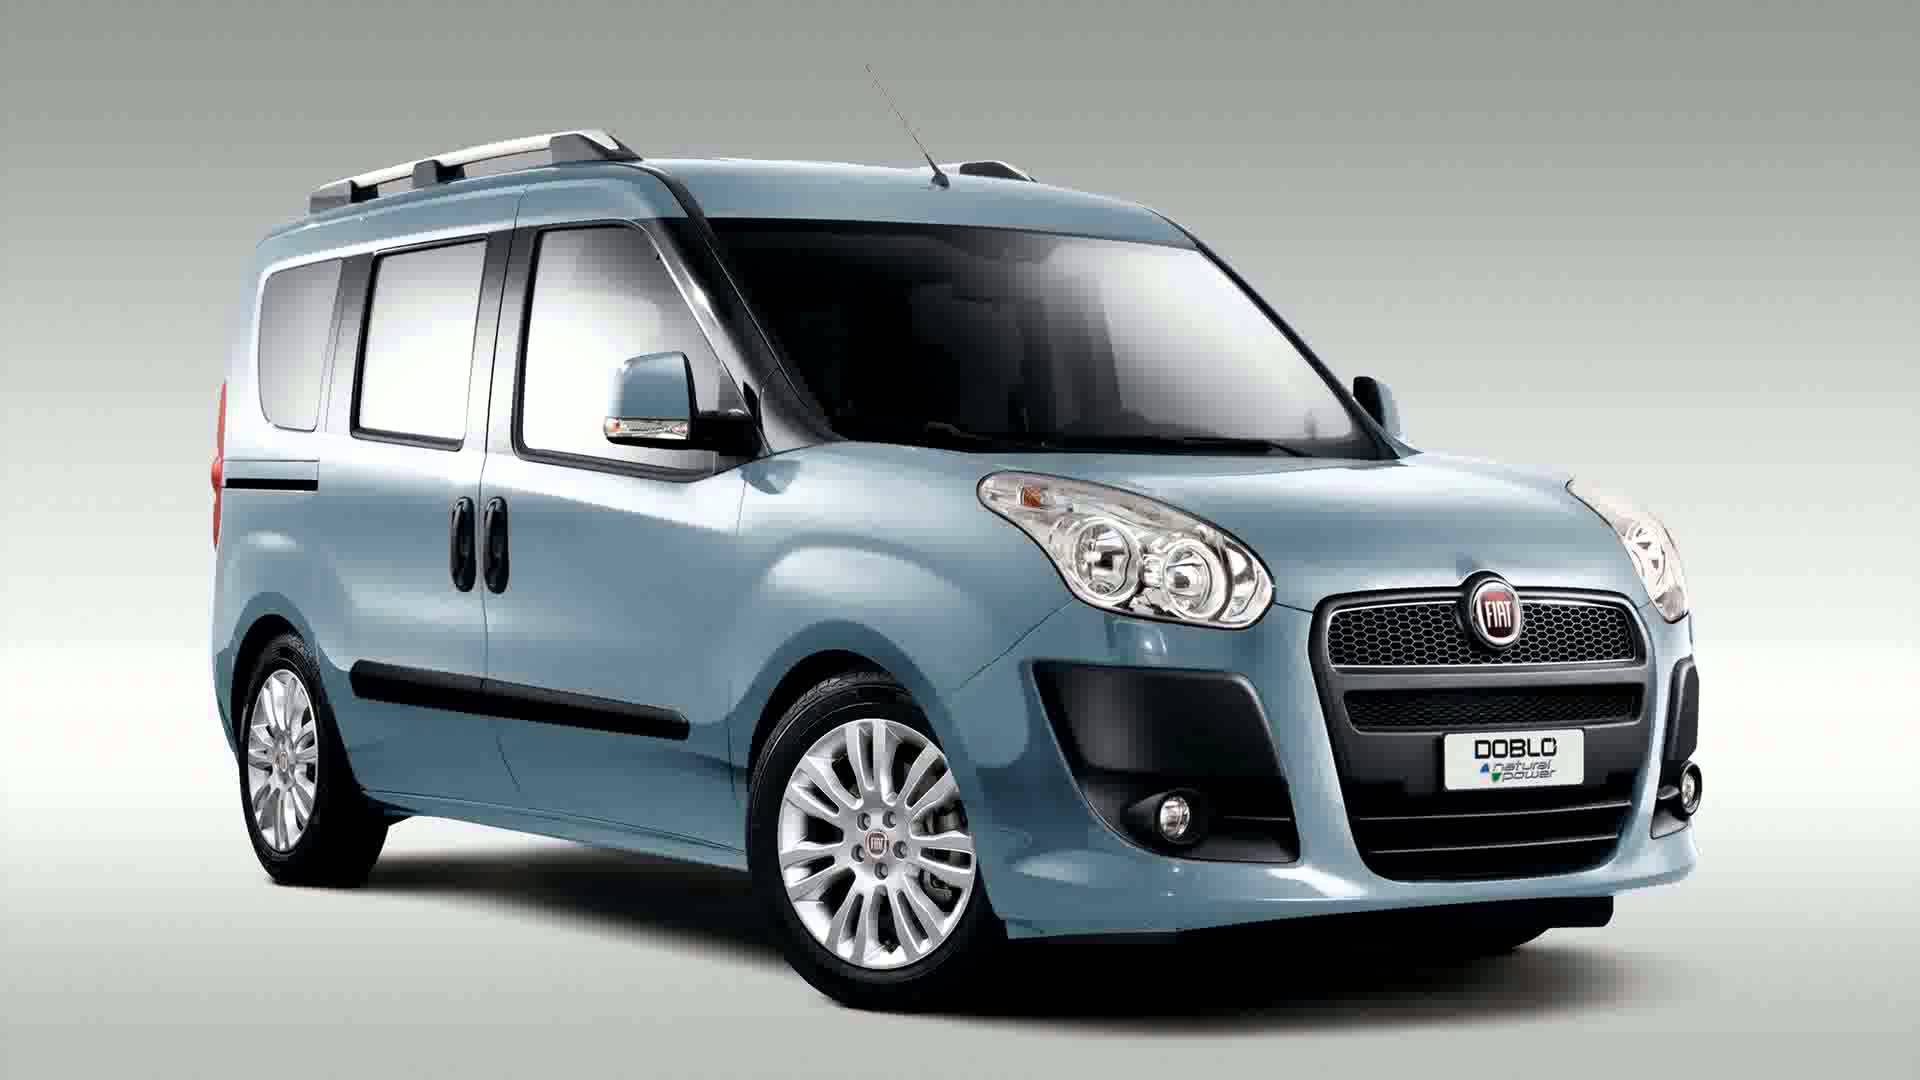 2015 fiat doblo panorama fiyatlar uygun ta t. Black Bedroom Furniture Sets. Home Design Ideas